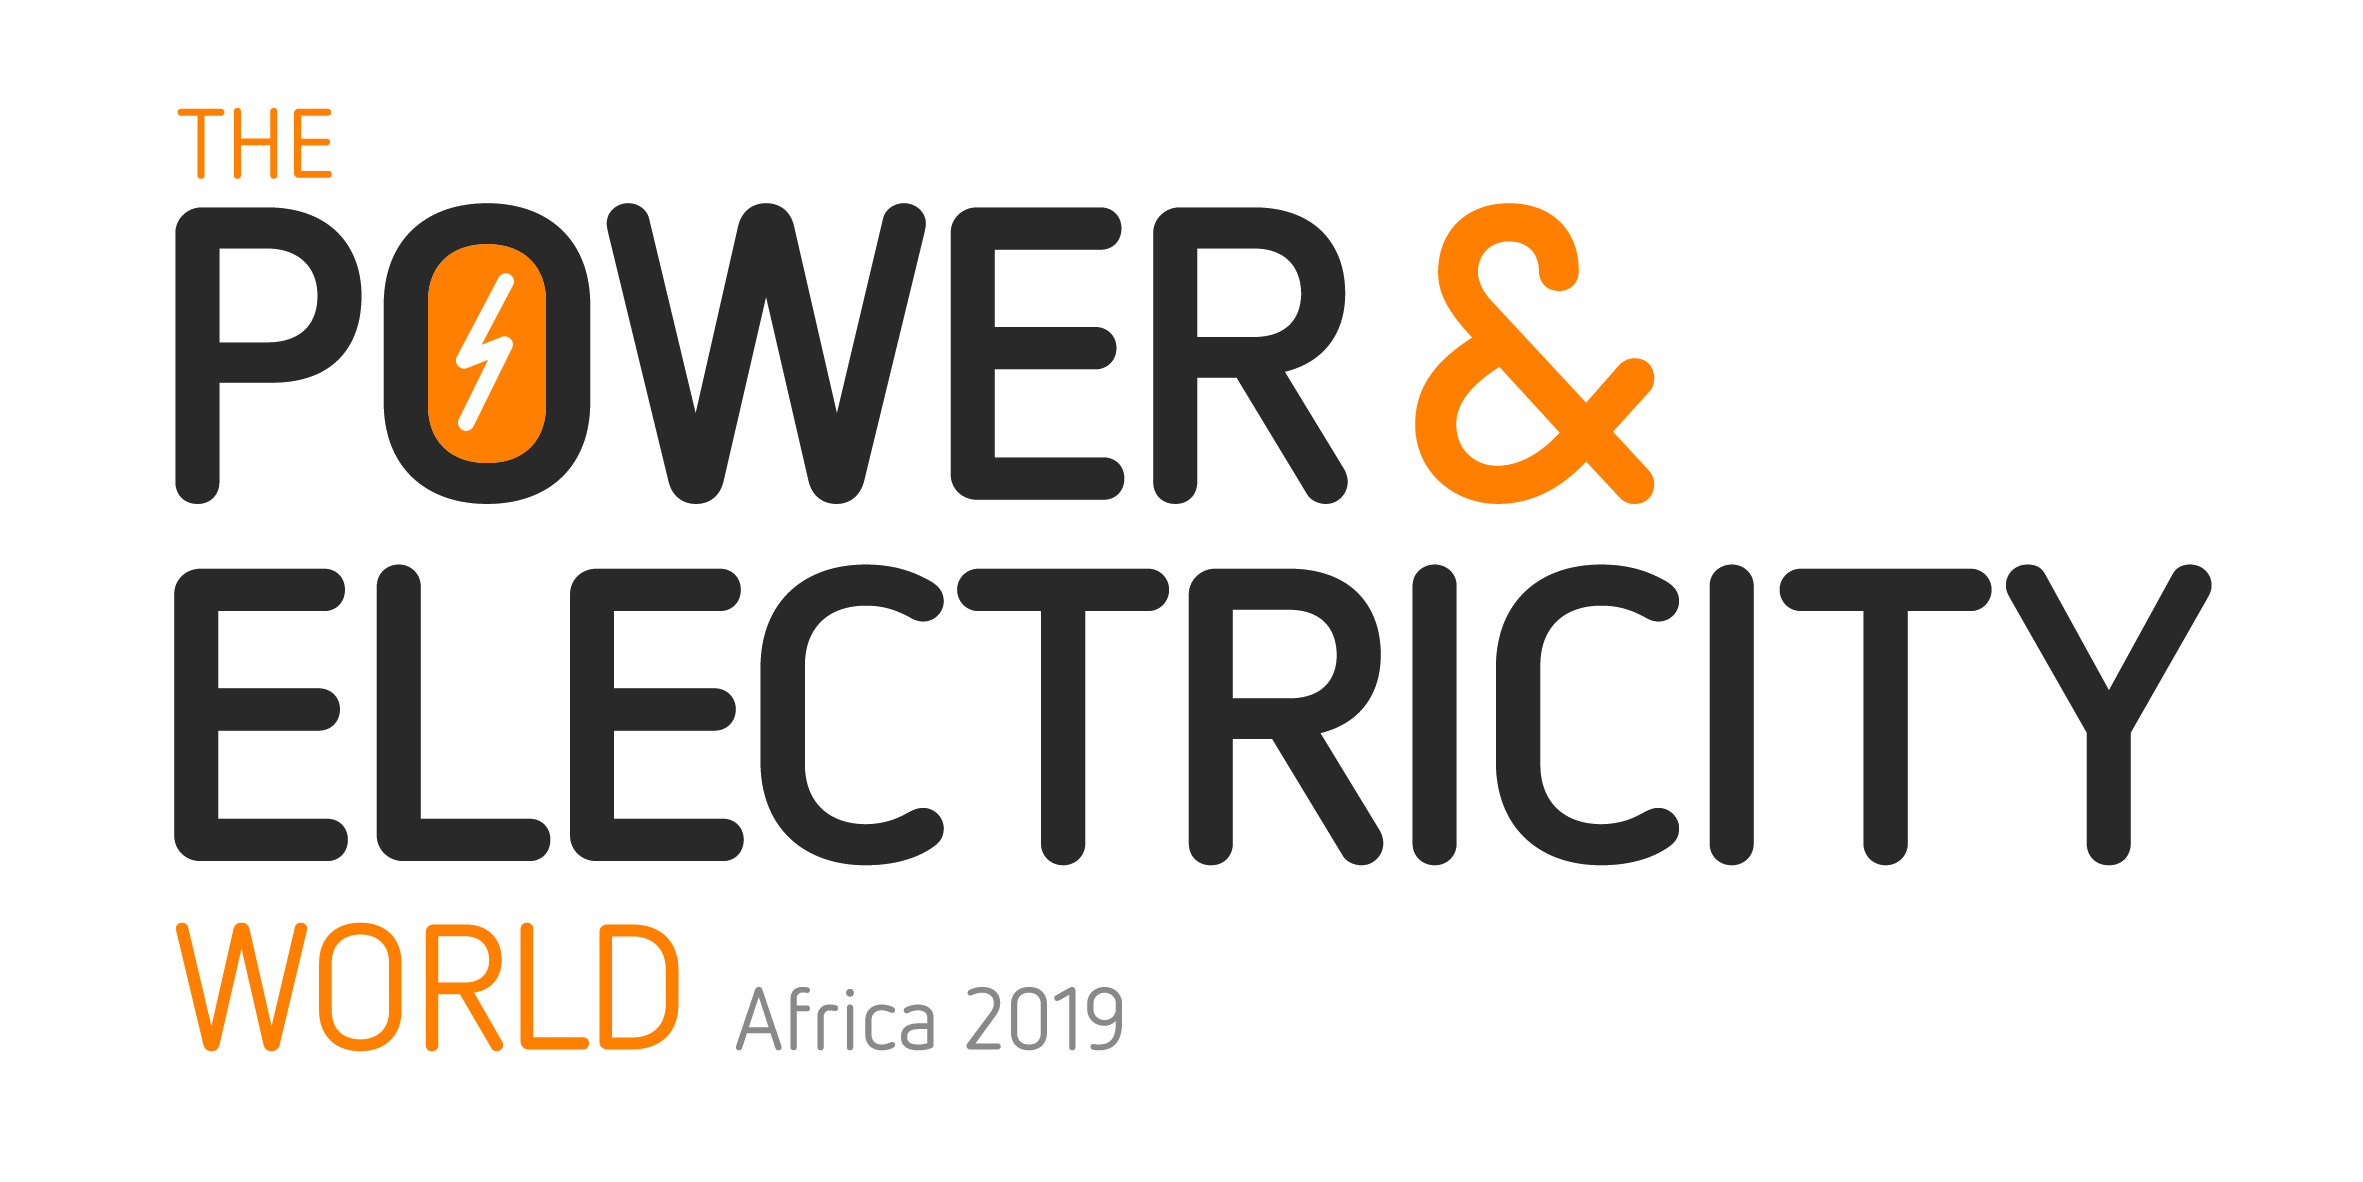 Power & Electricity World Africa 2019 Logo